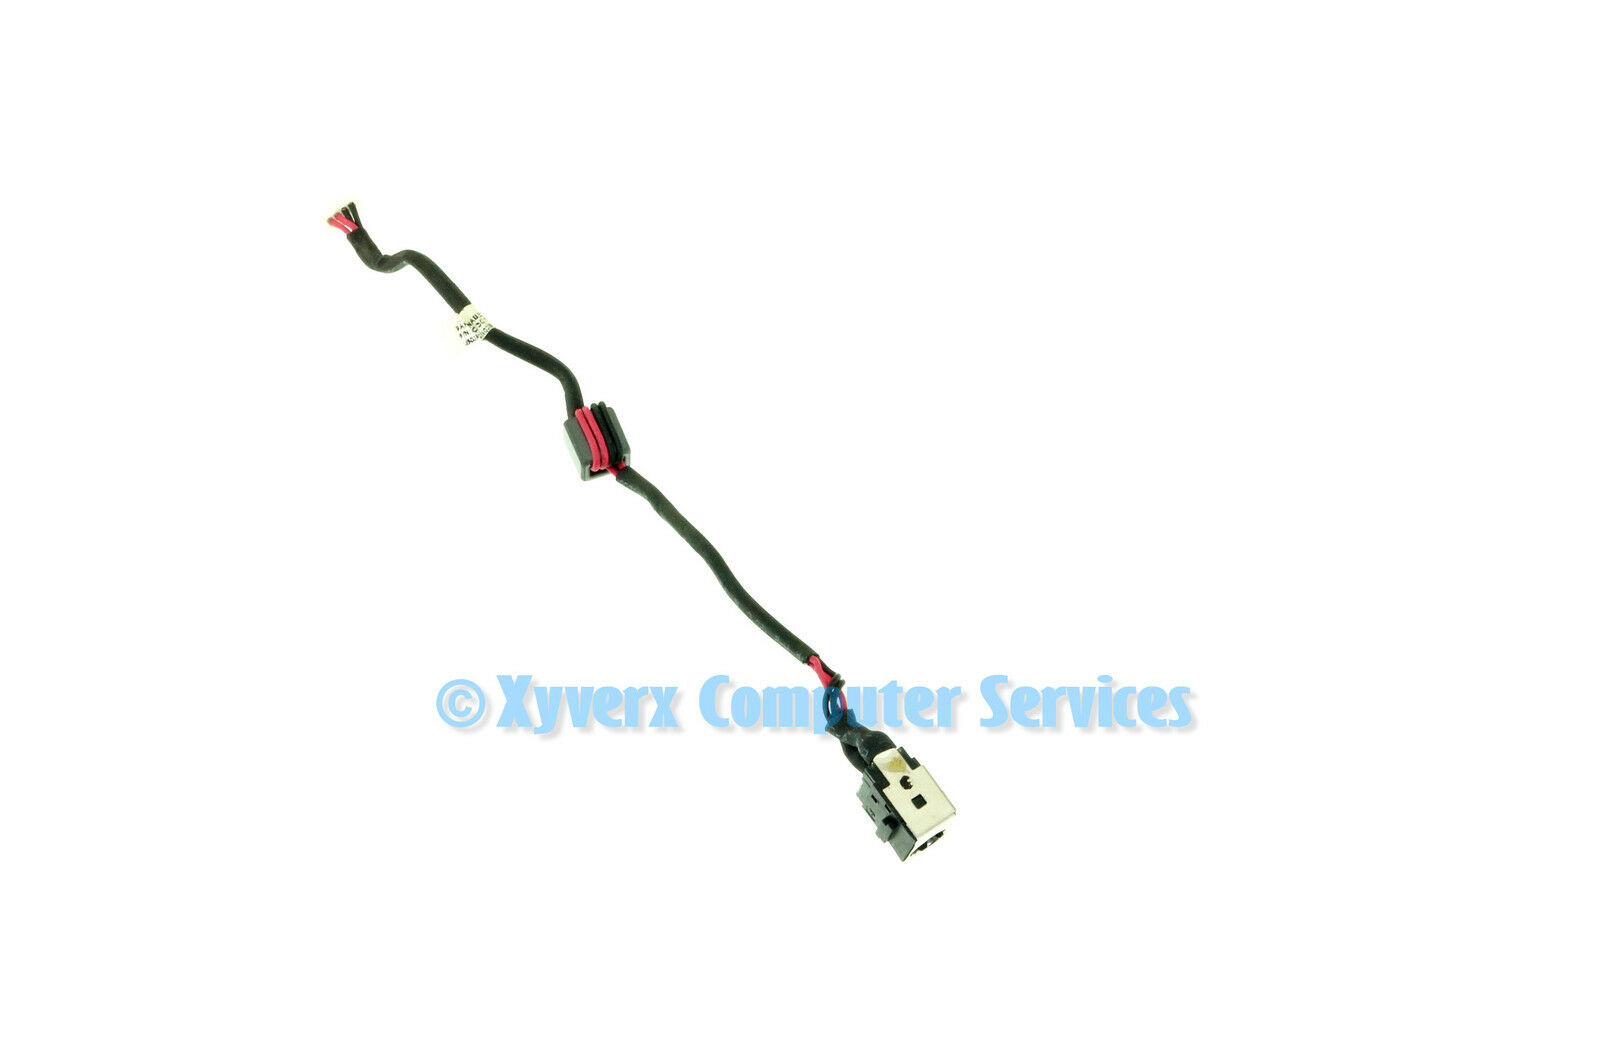 hight resolution of dc in power jack with cable harness lenovo ideapad s10 series 2002 s10 wiring schematic s10